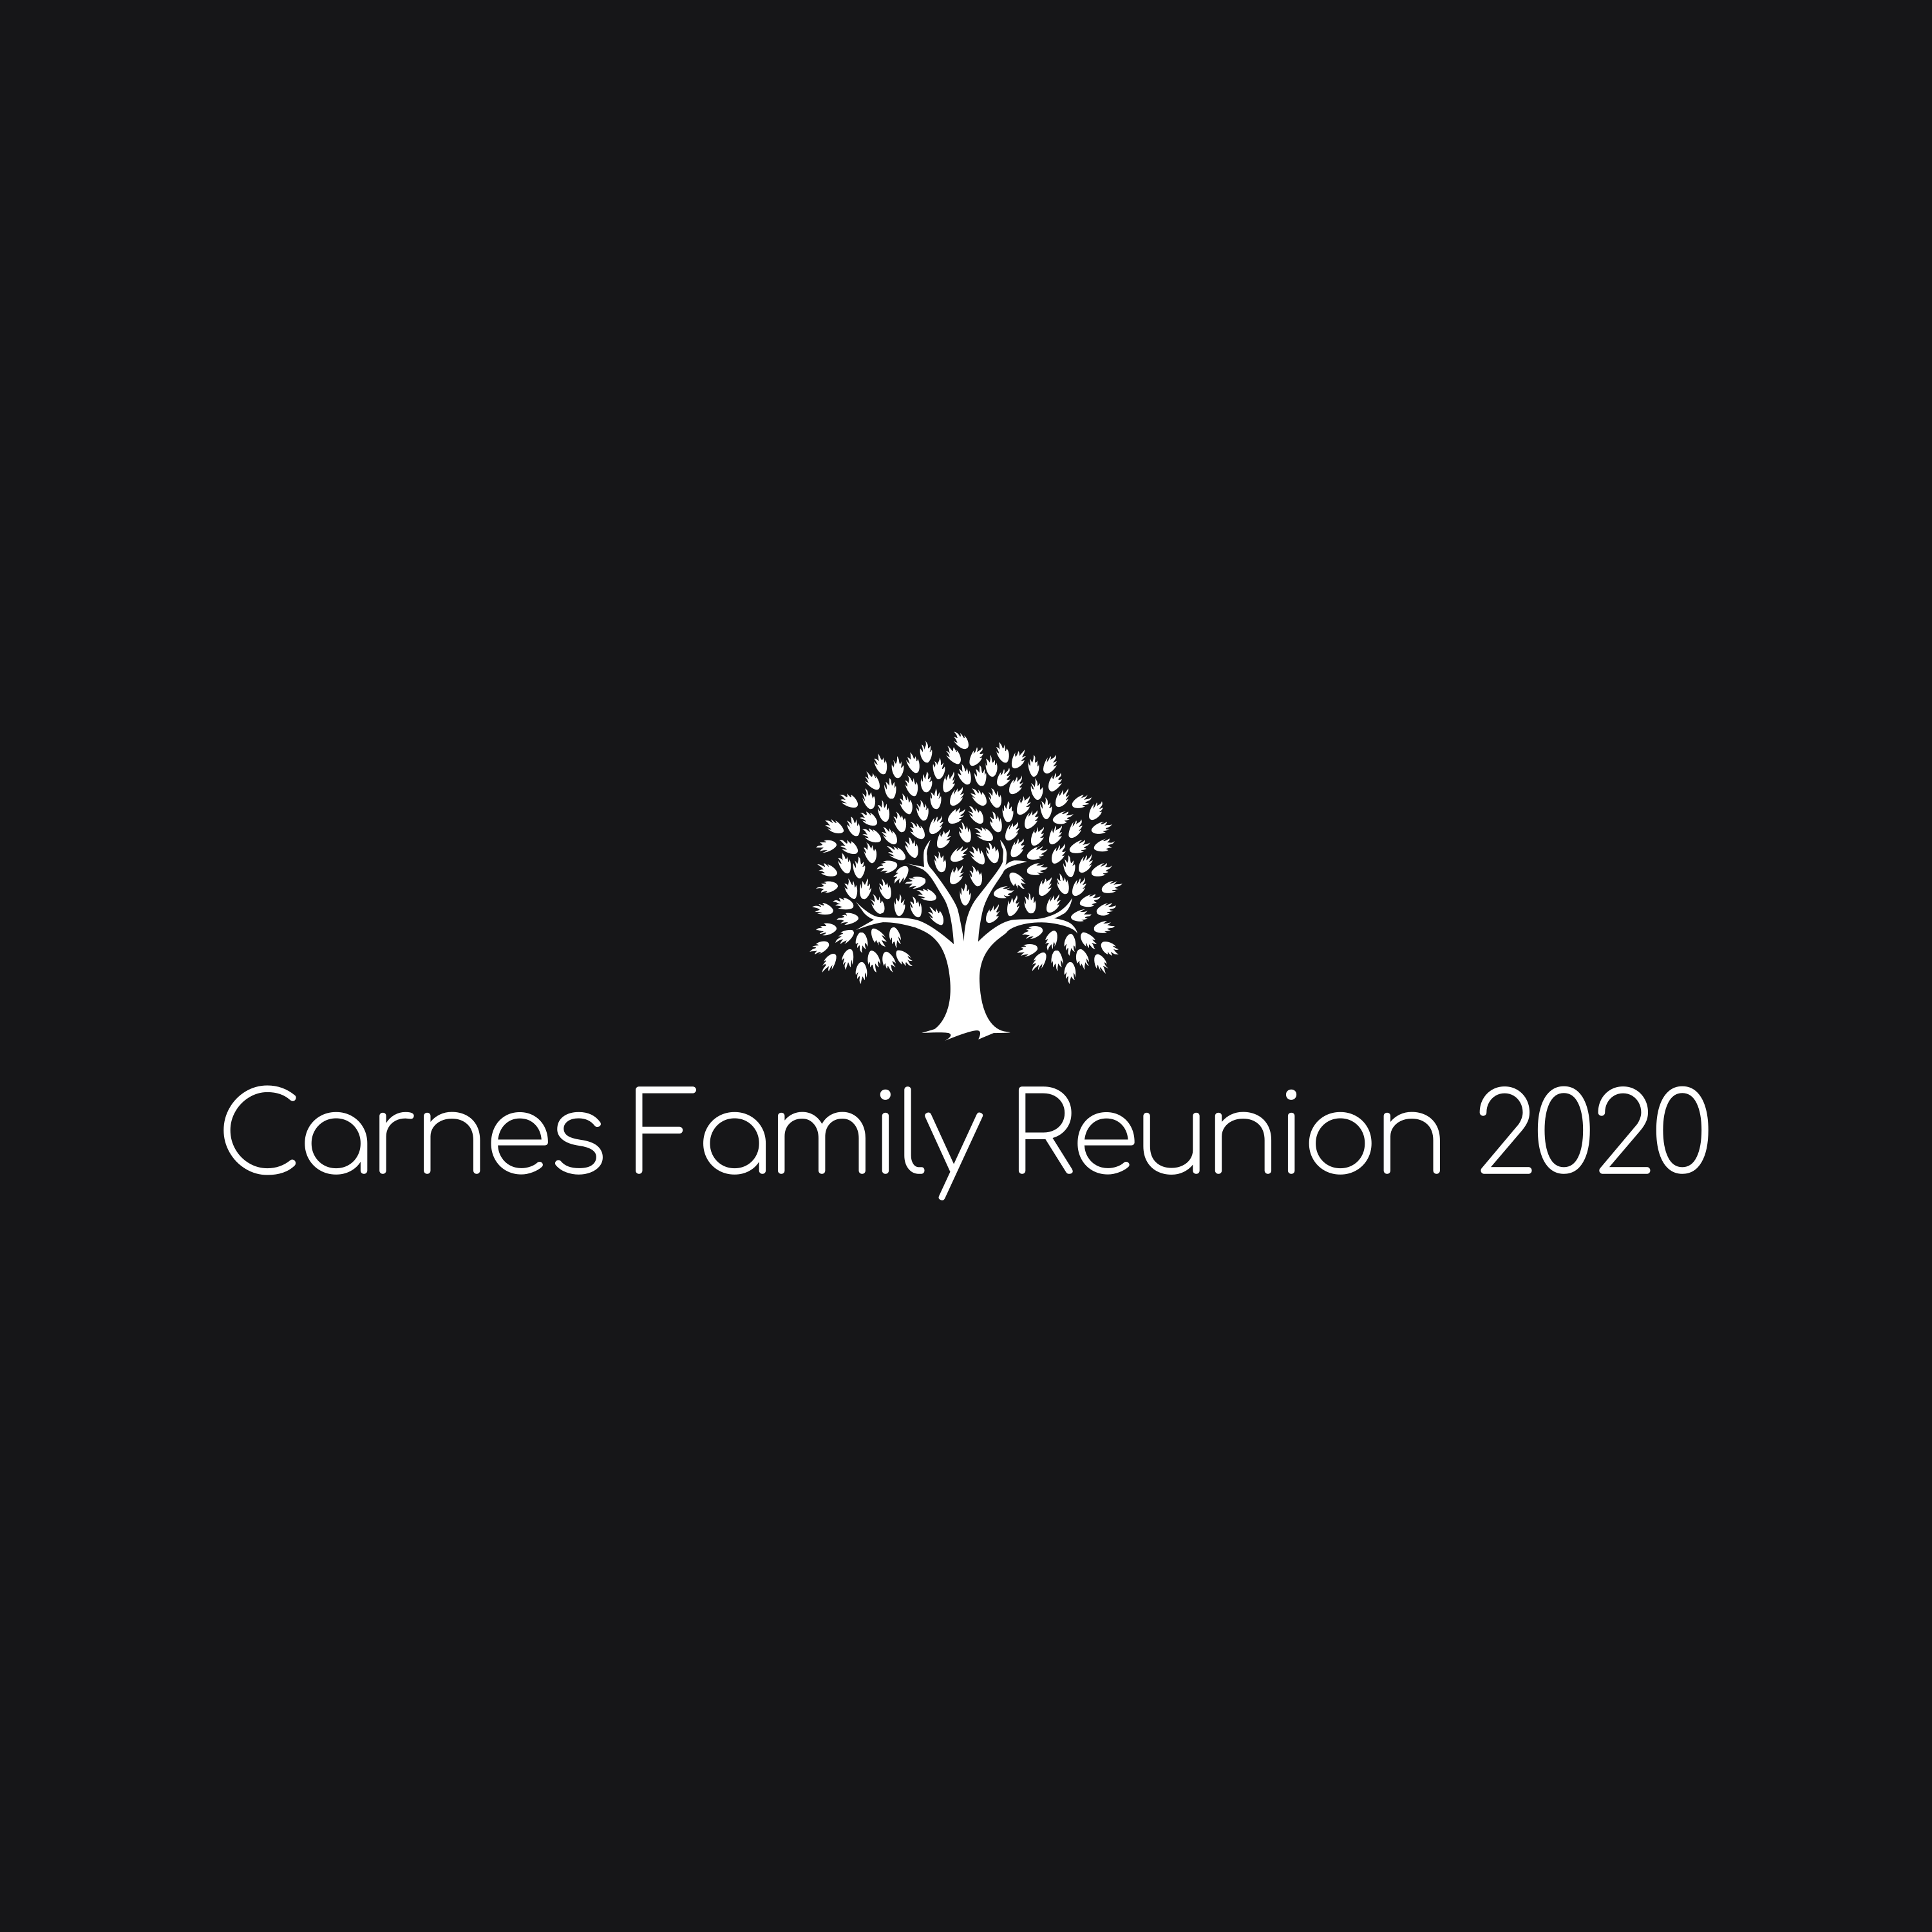 Carnes Family Reunion 2020